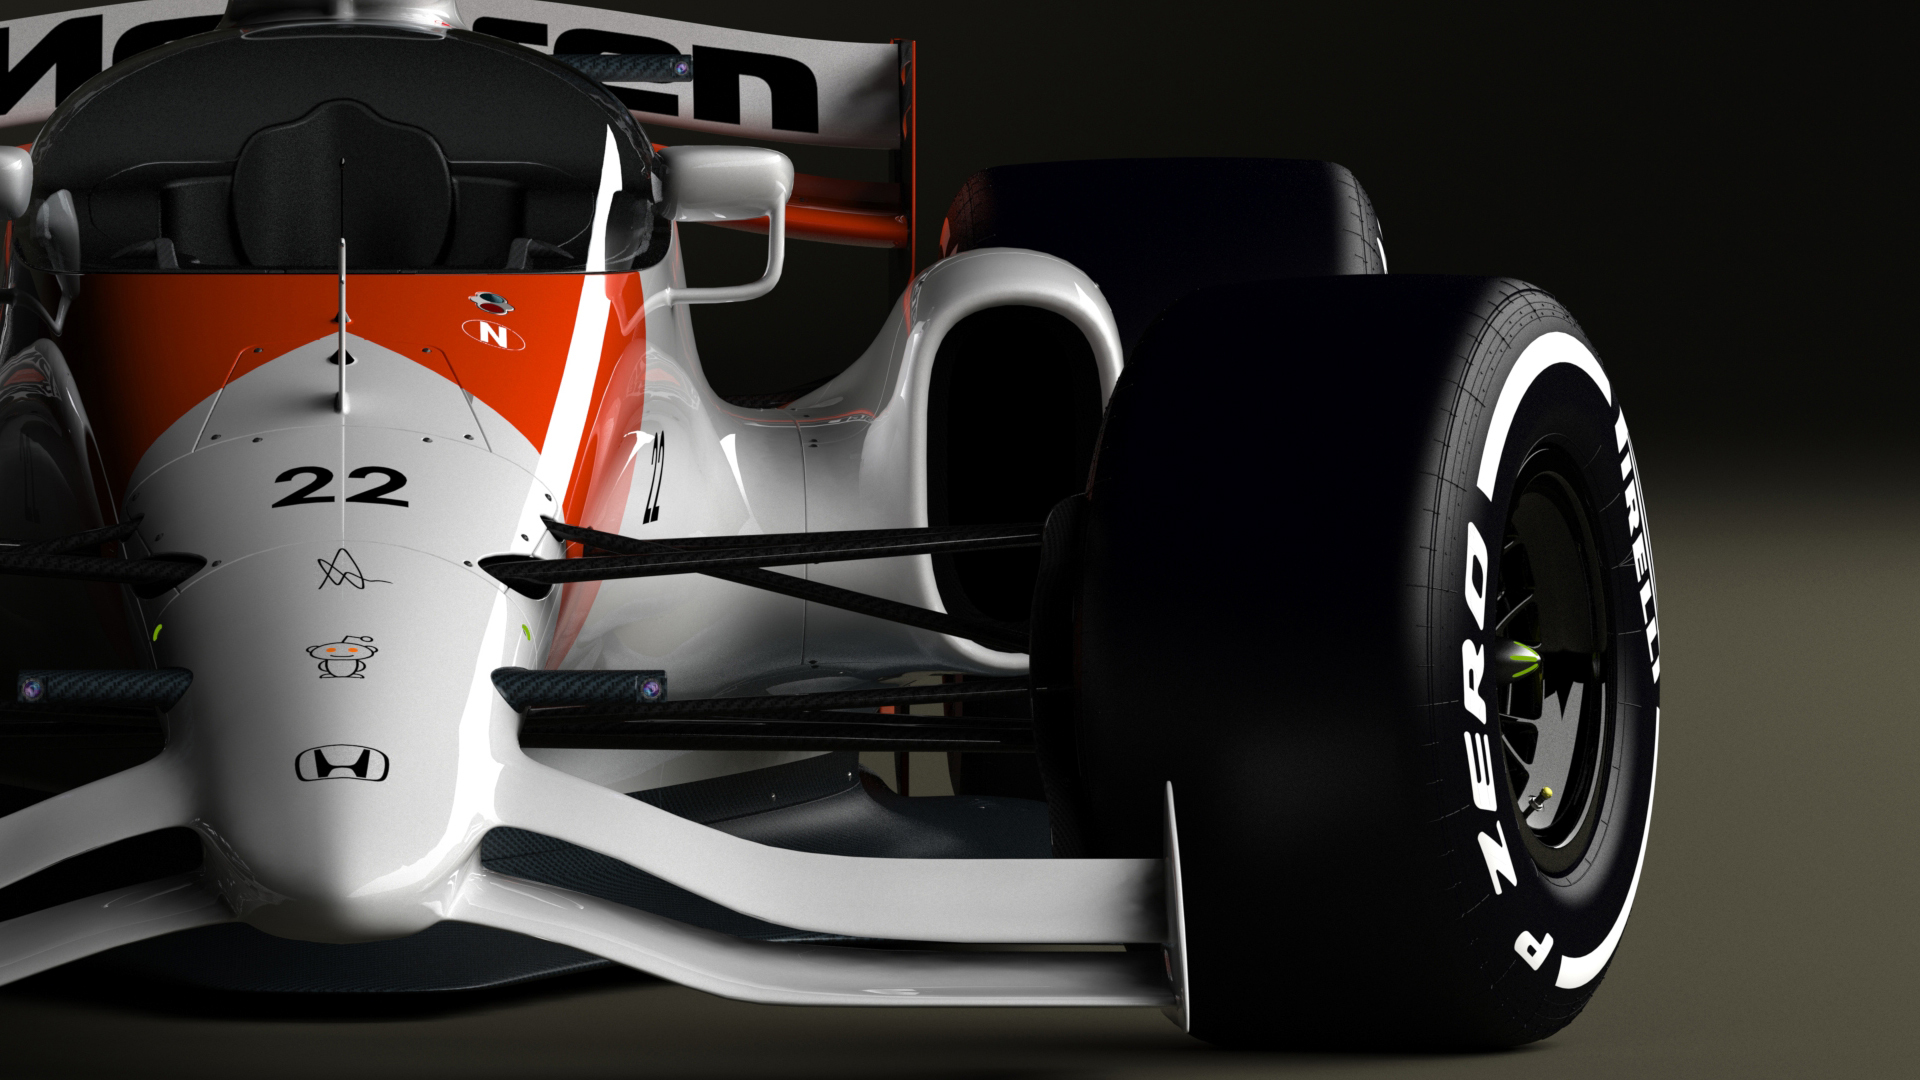 Mclaren Honda Formula 1 Concept With Closed Cockpit On Behance